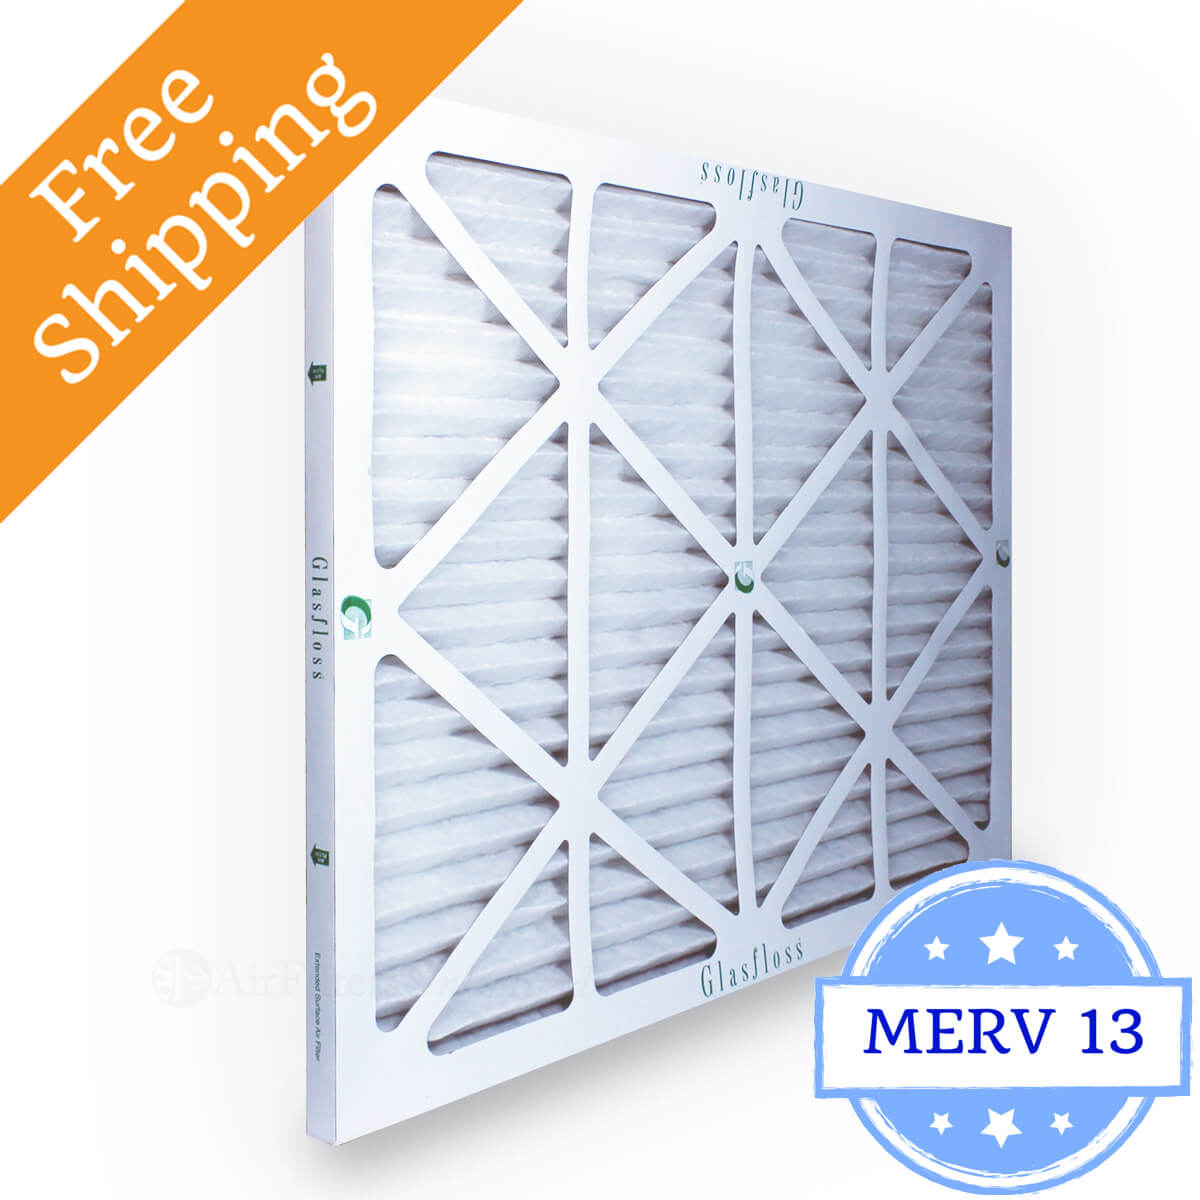 Glasfloss 20x25x1 Air Filter MR-13 Series